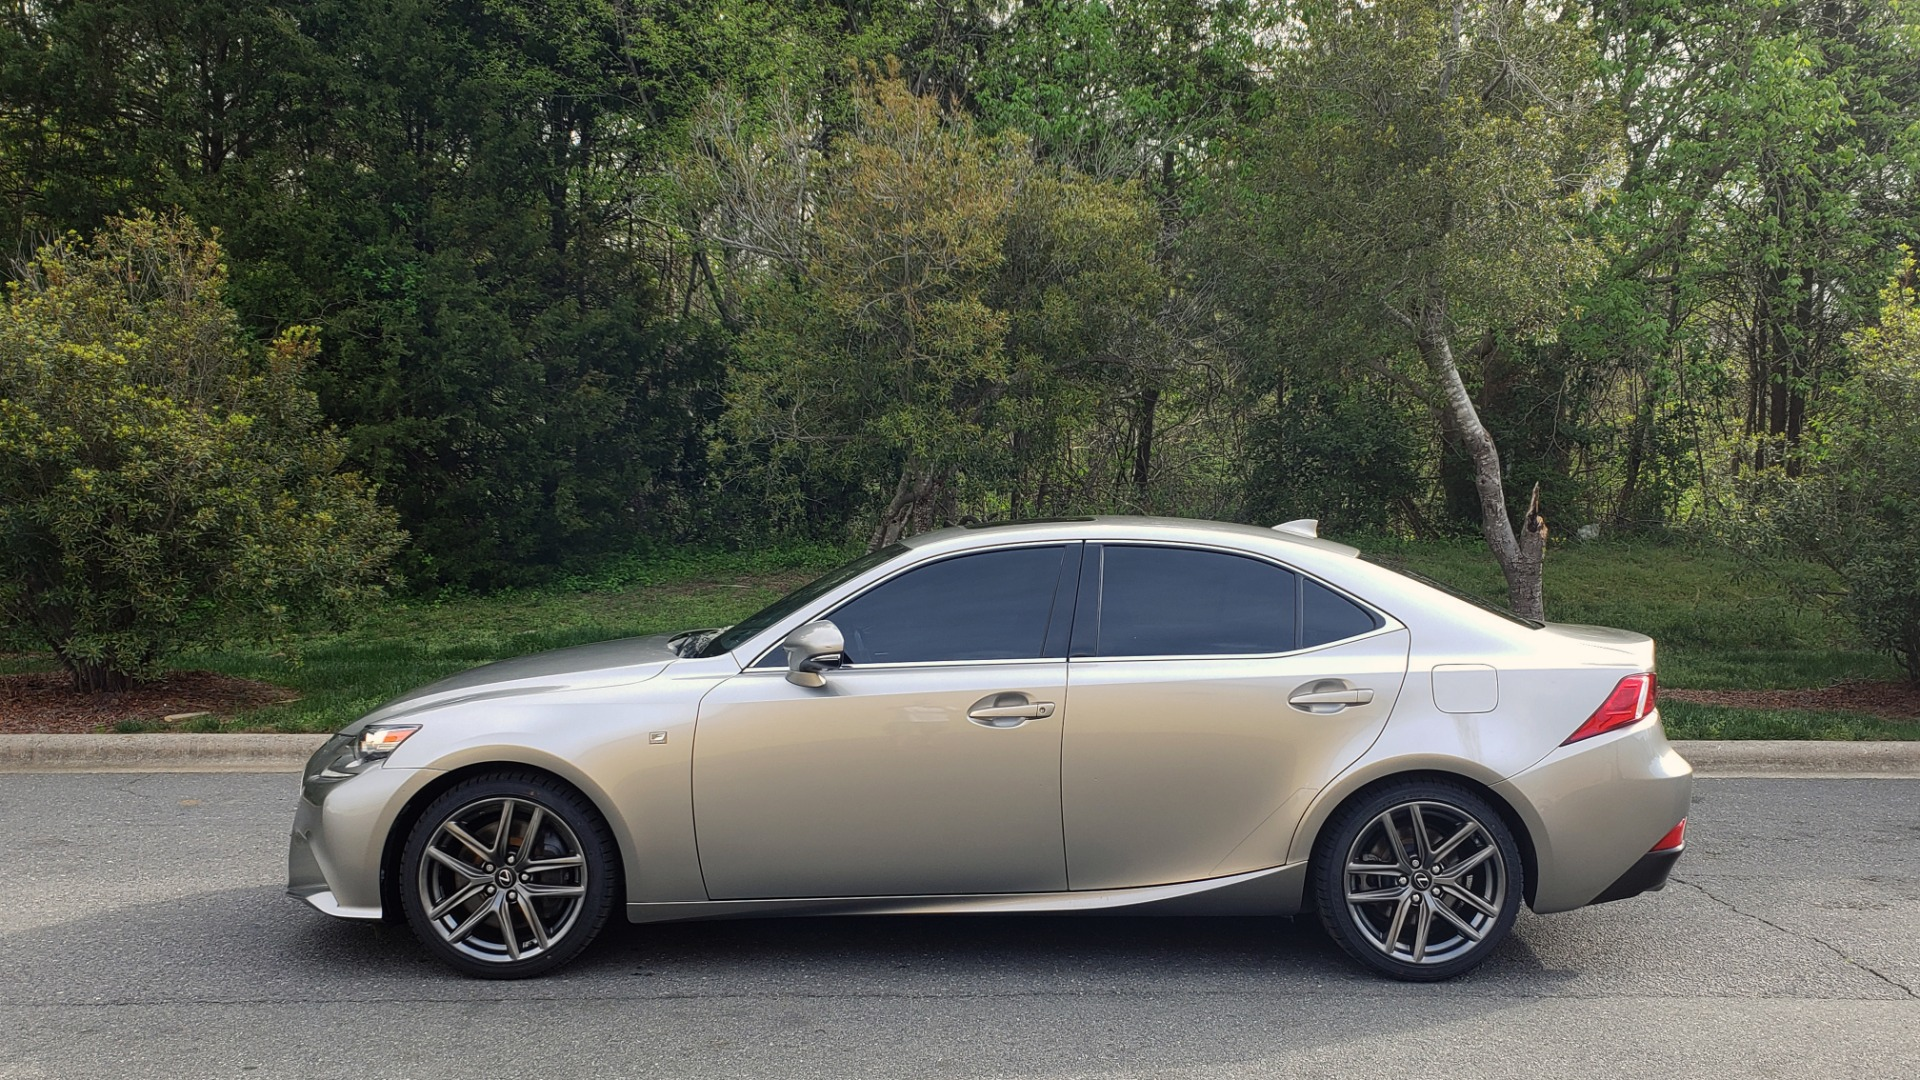 Used 2016 Lexus IS 200T F-SPORT / BSM / SUNROOF / VENTILATED SEATS / REARVIEW for sale Sold at Formula Imports in Charlotte NC 28227 2